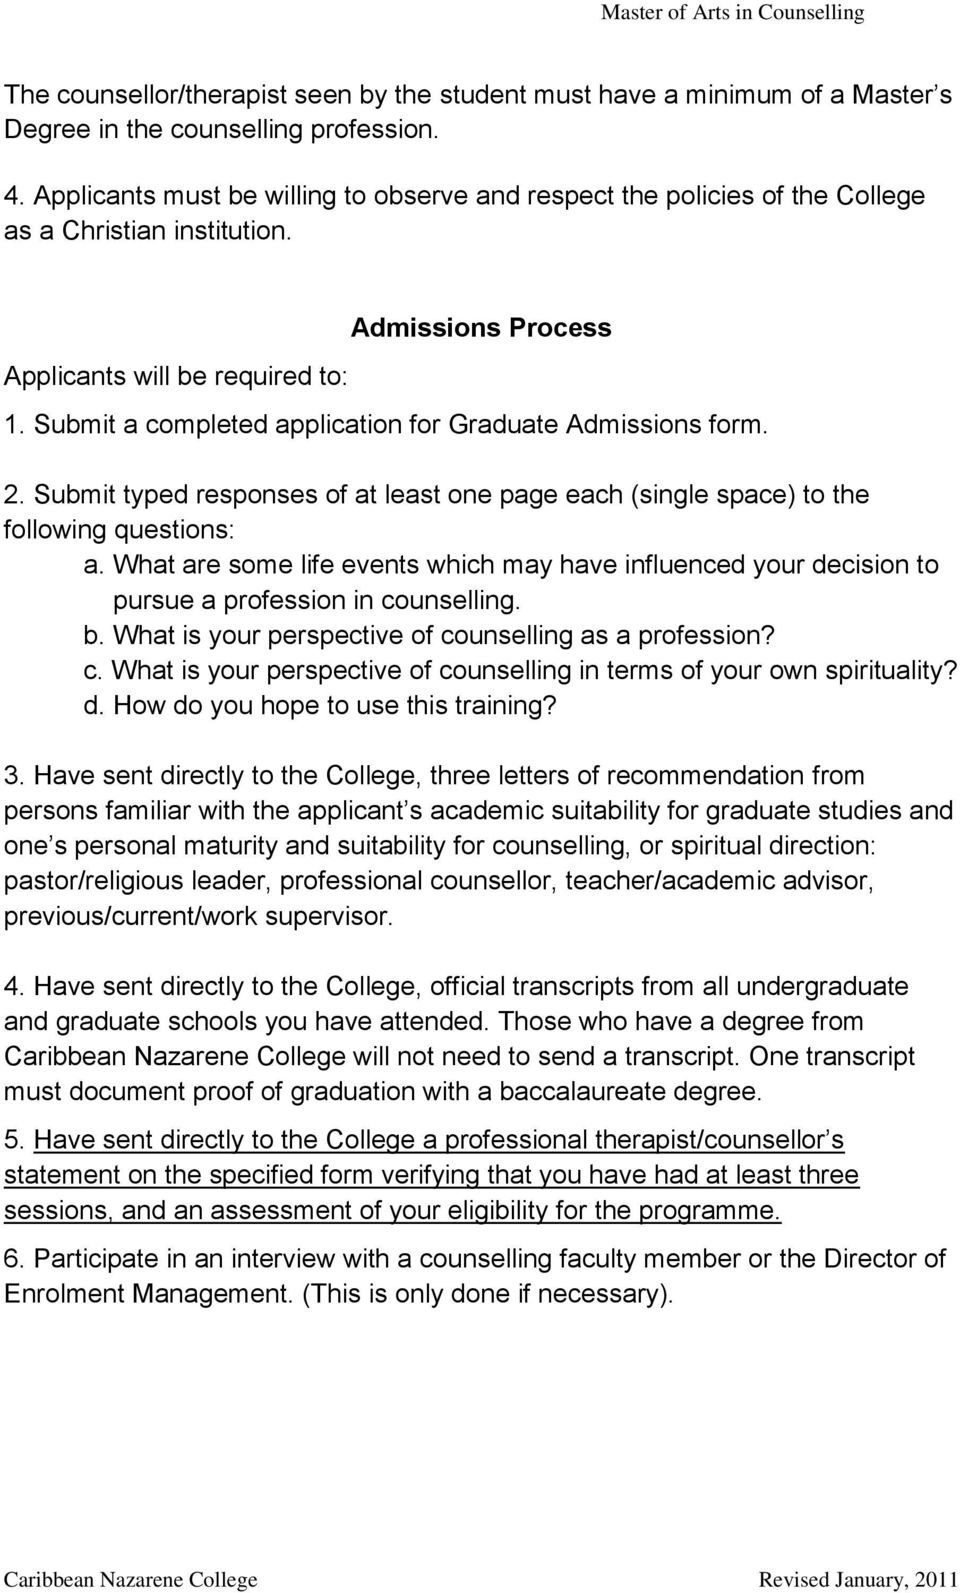 Submit a completed application for Graduate Admissions form. 2. Submit typed responses of at least one page each (single space) to the following questions: a.